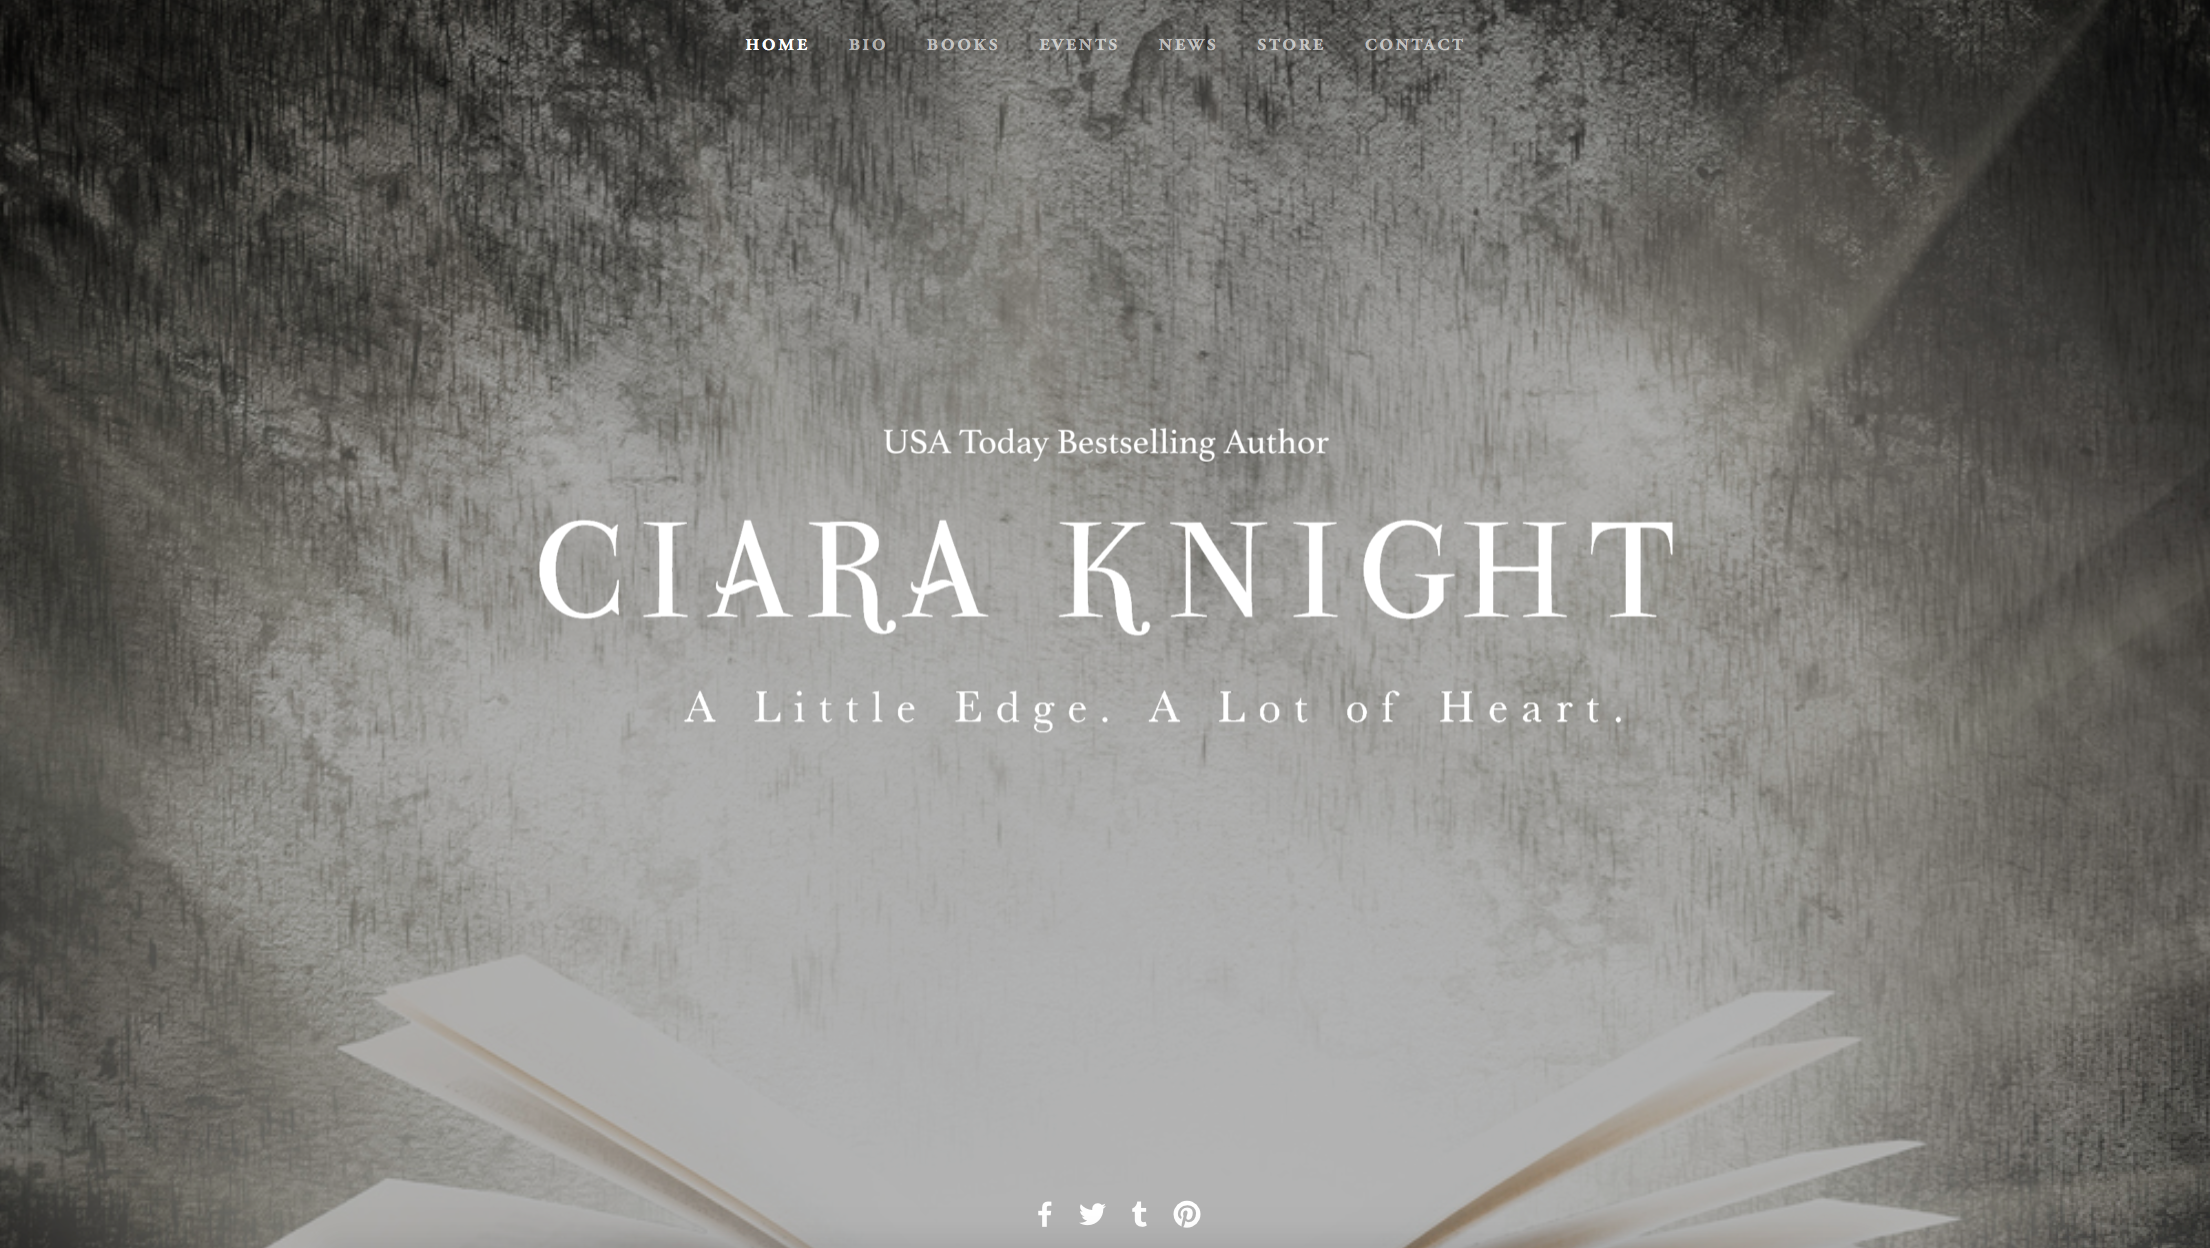 Ciara Knight (USA Today Bestselling Author)